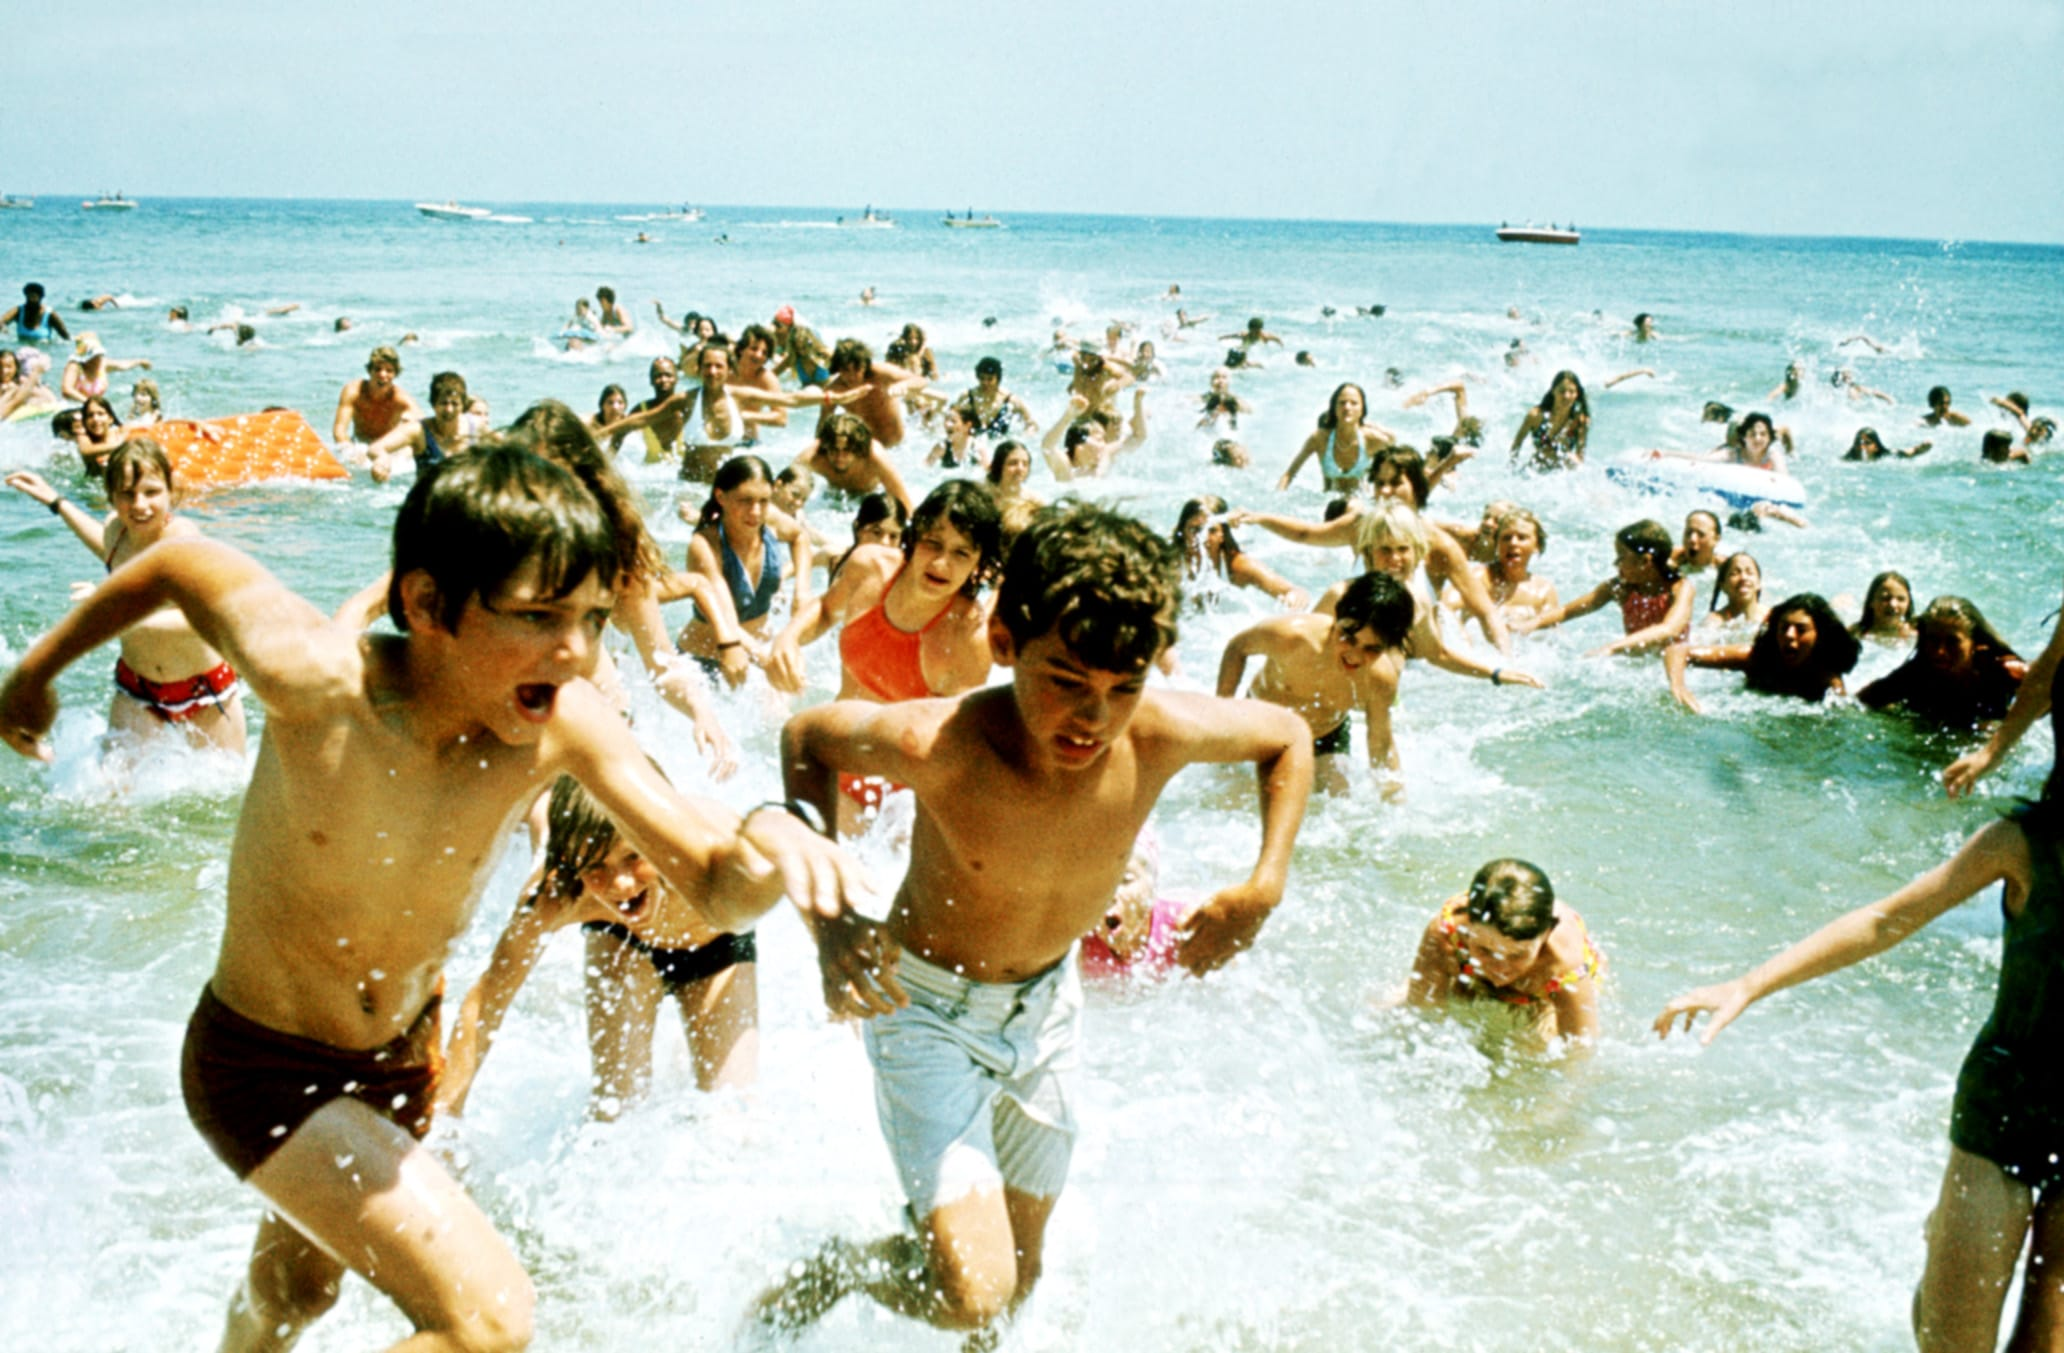 jaws extras running from the water